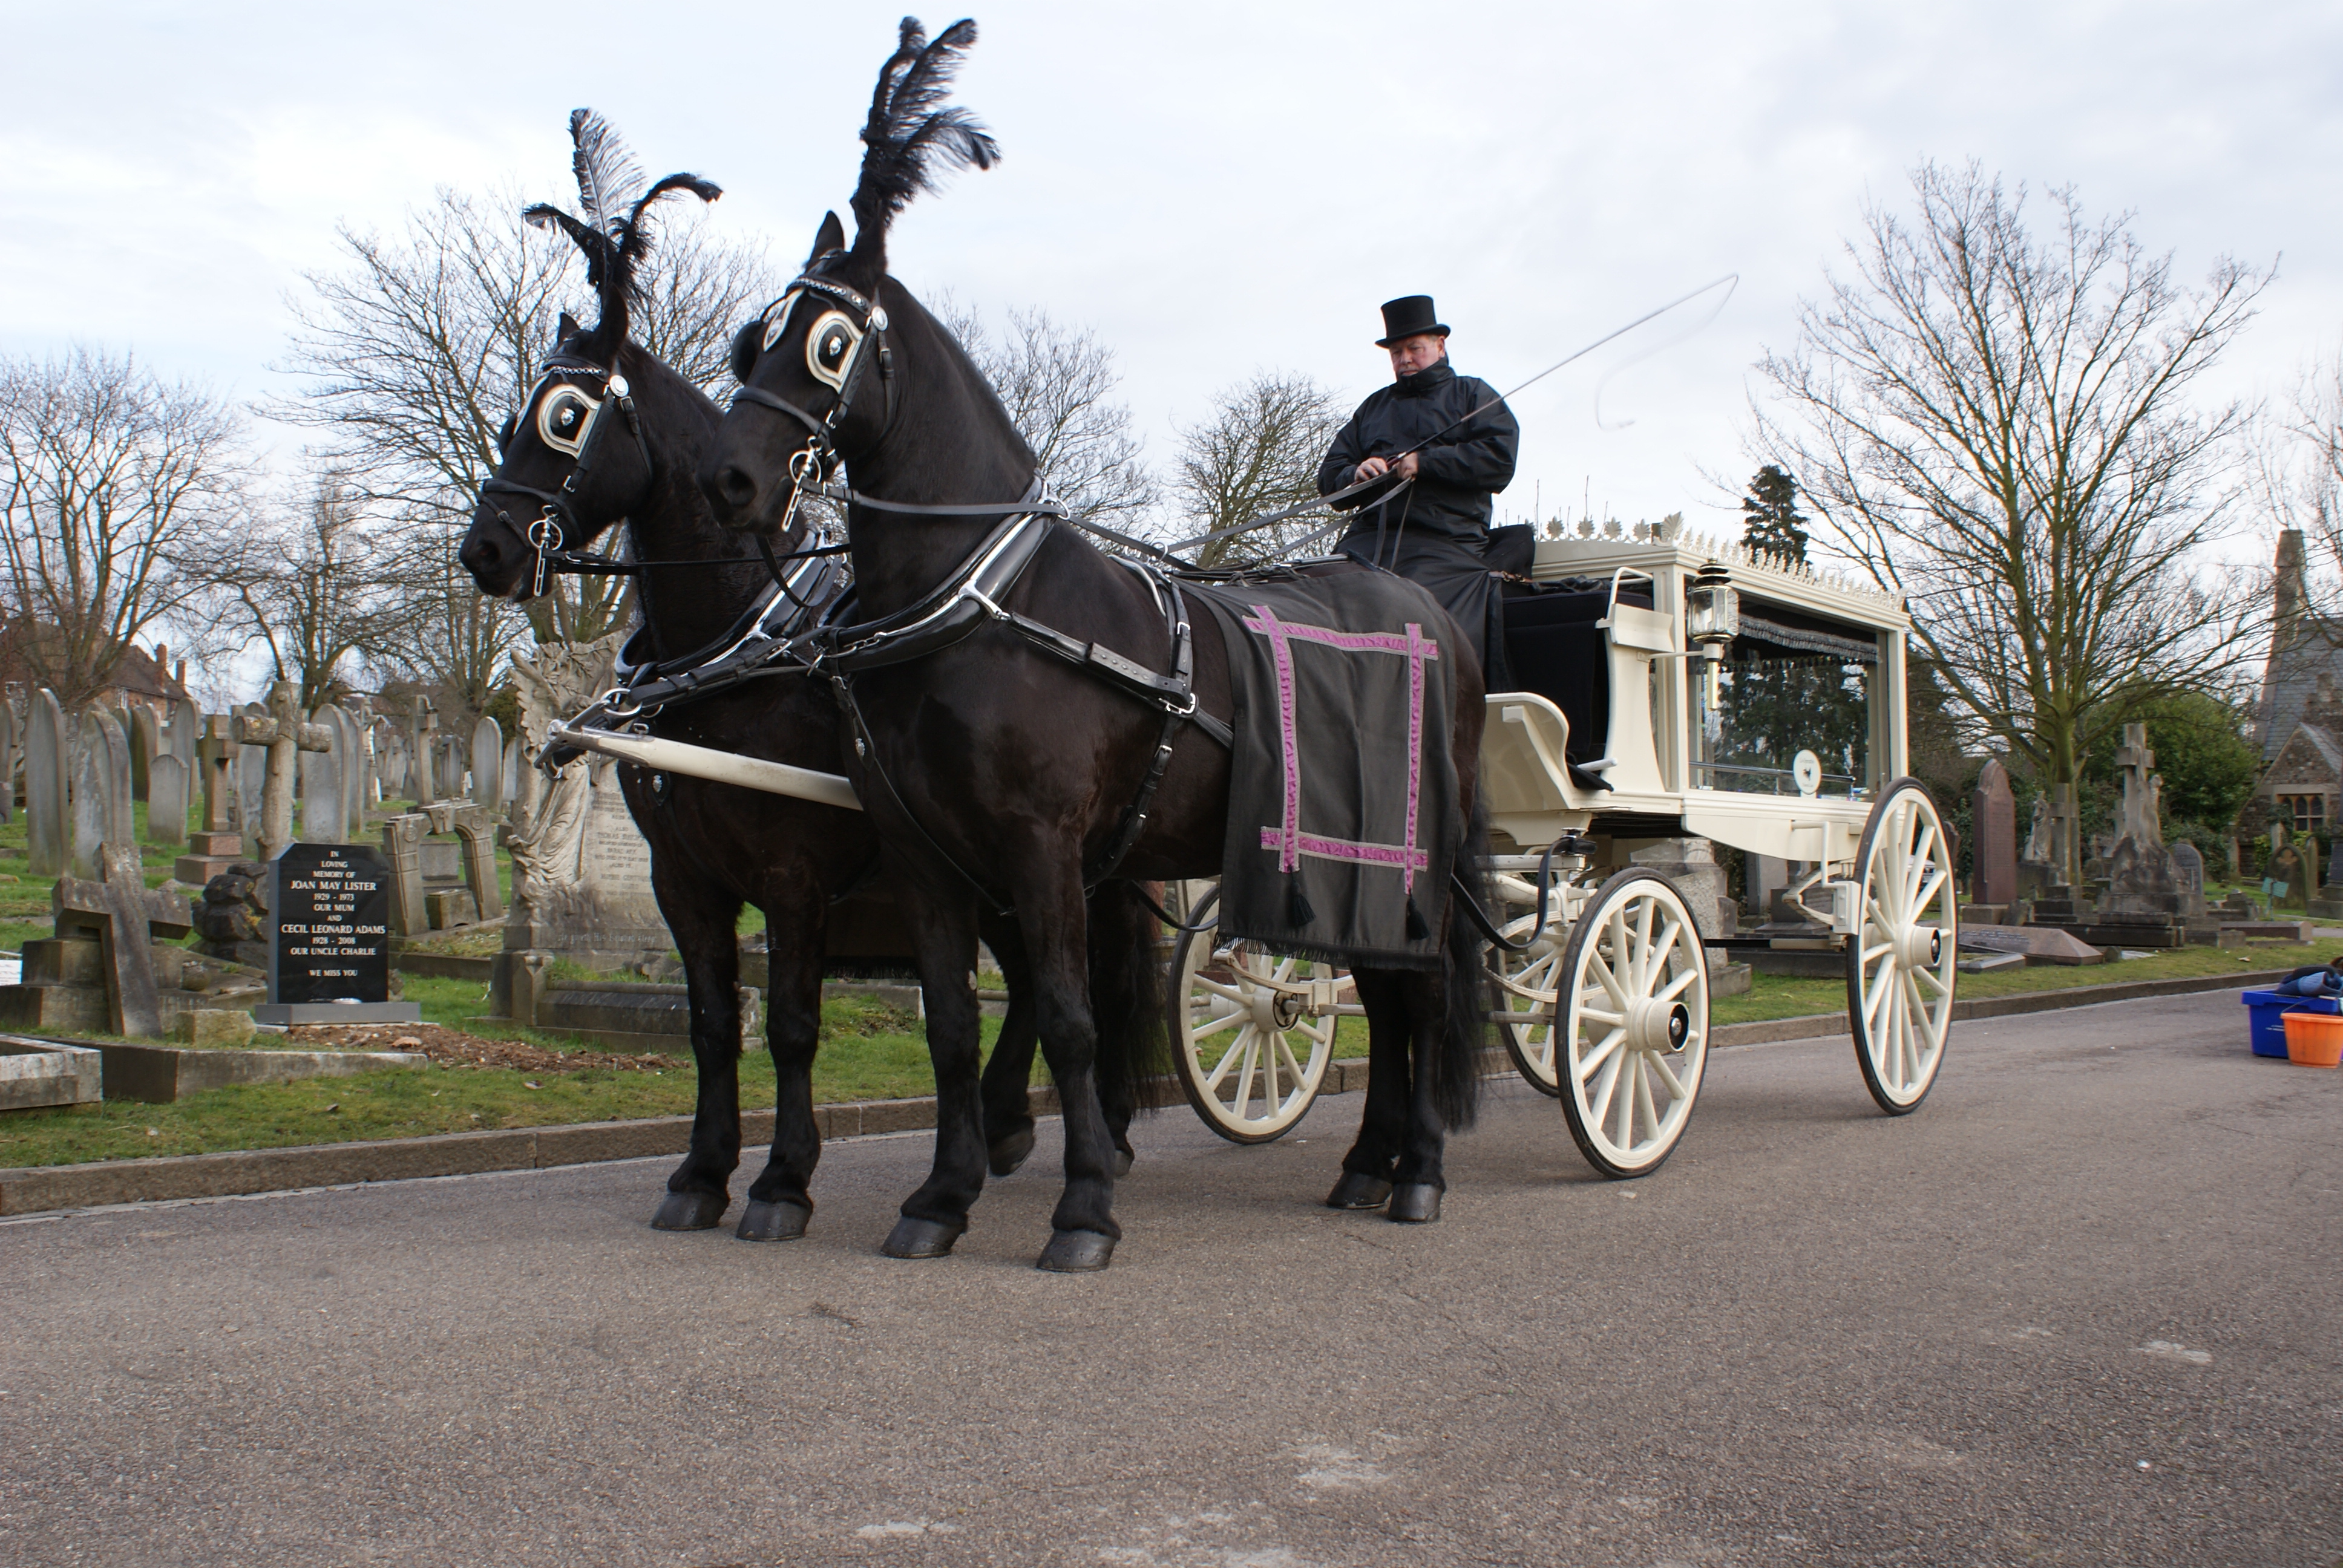 Drawn trolley friesian horse Get Hire about us touch